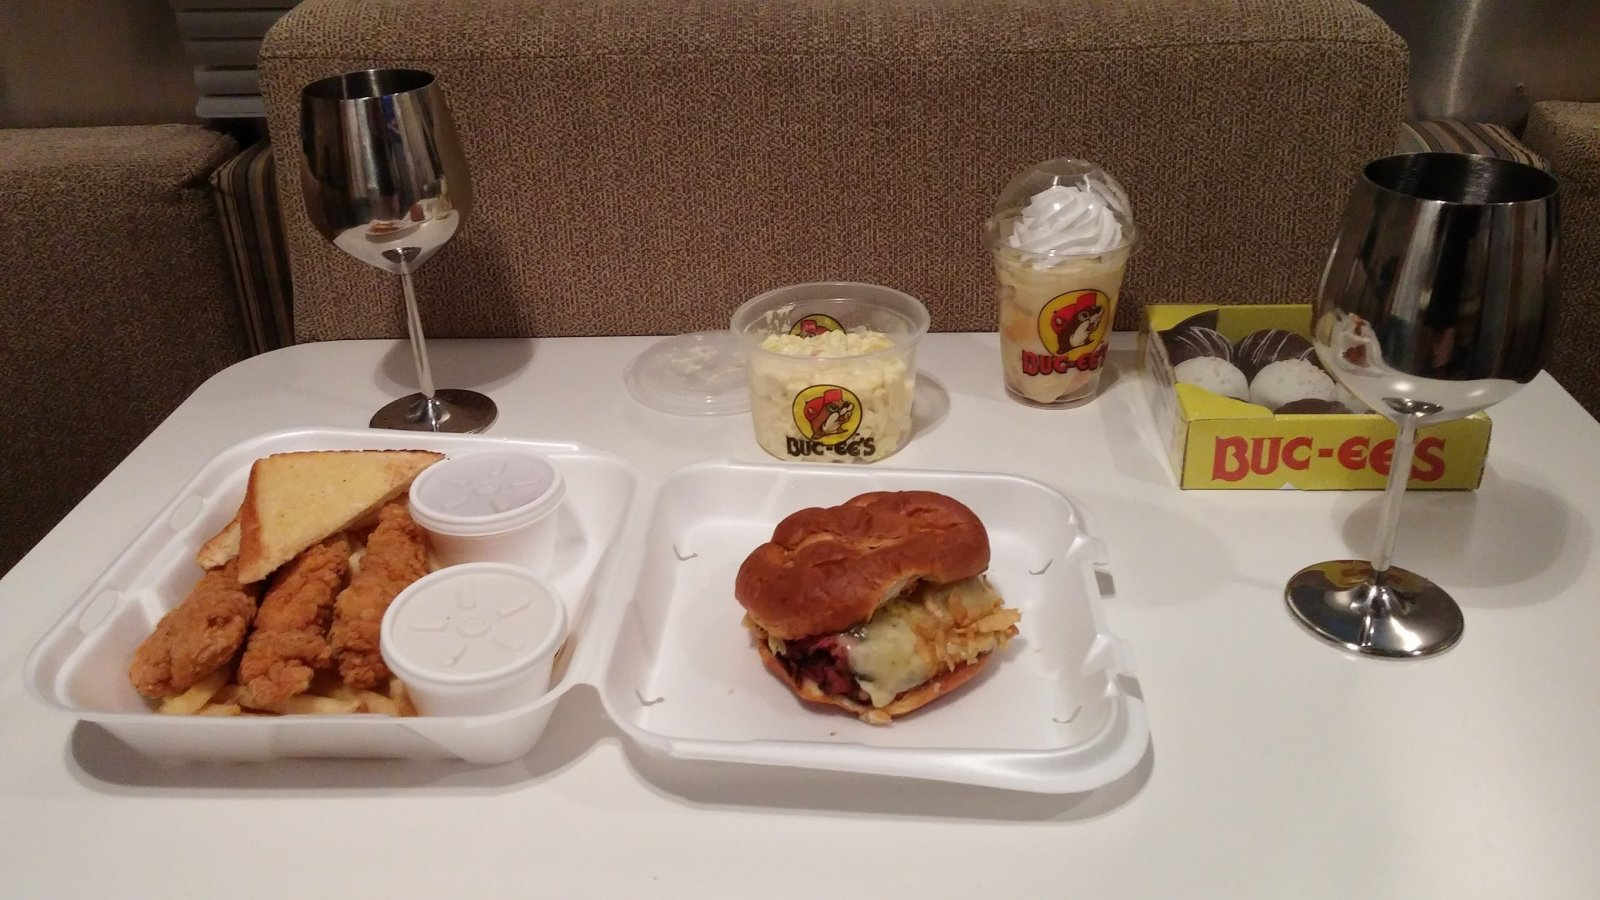 Click image for larger version  Name:BUC-EE's Food 1.jpg Views:95 Size:230.5 KB ID:252962